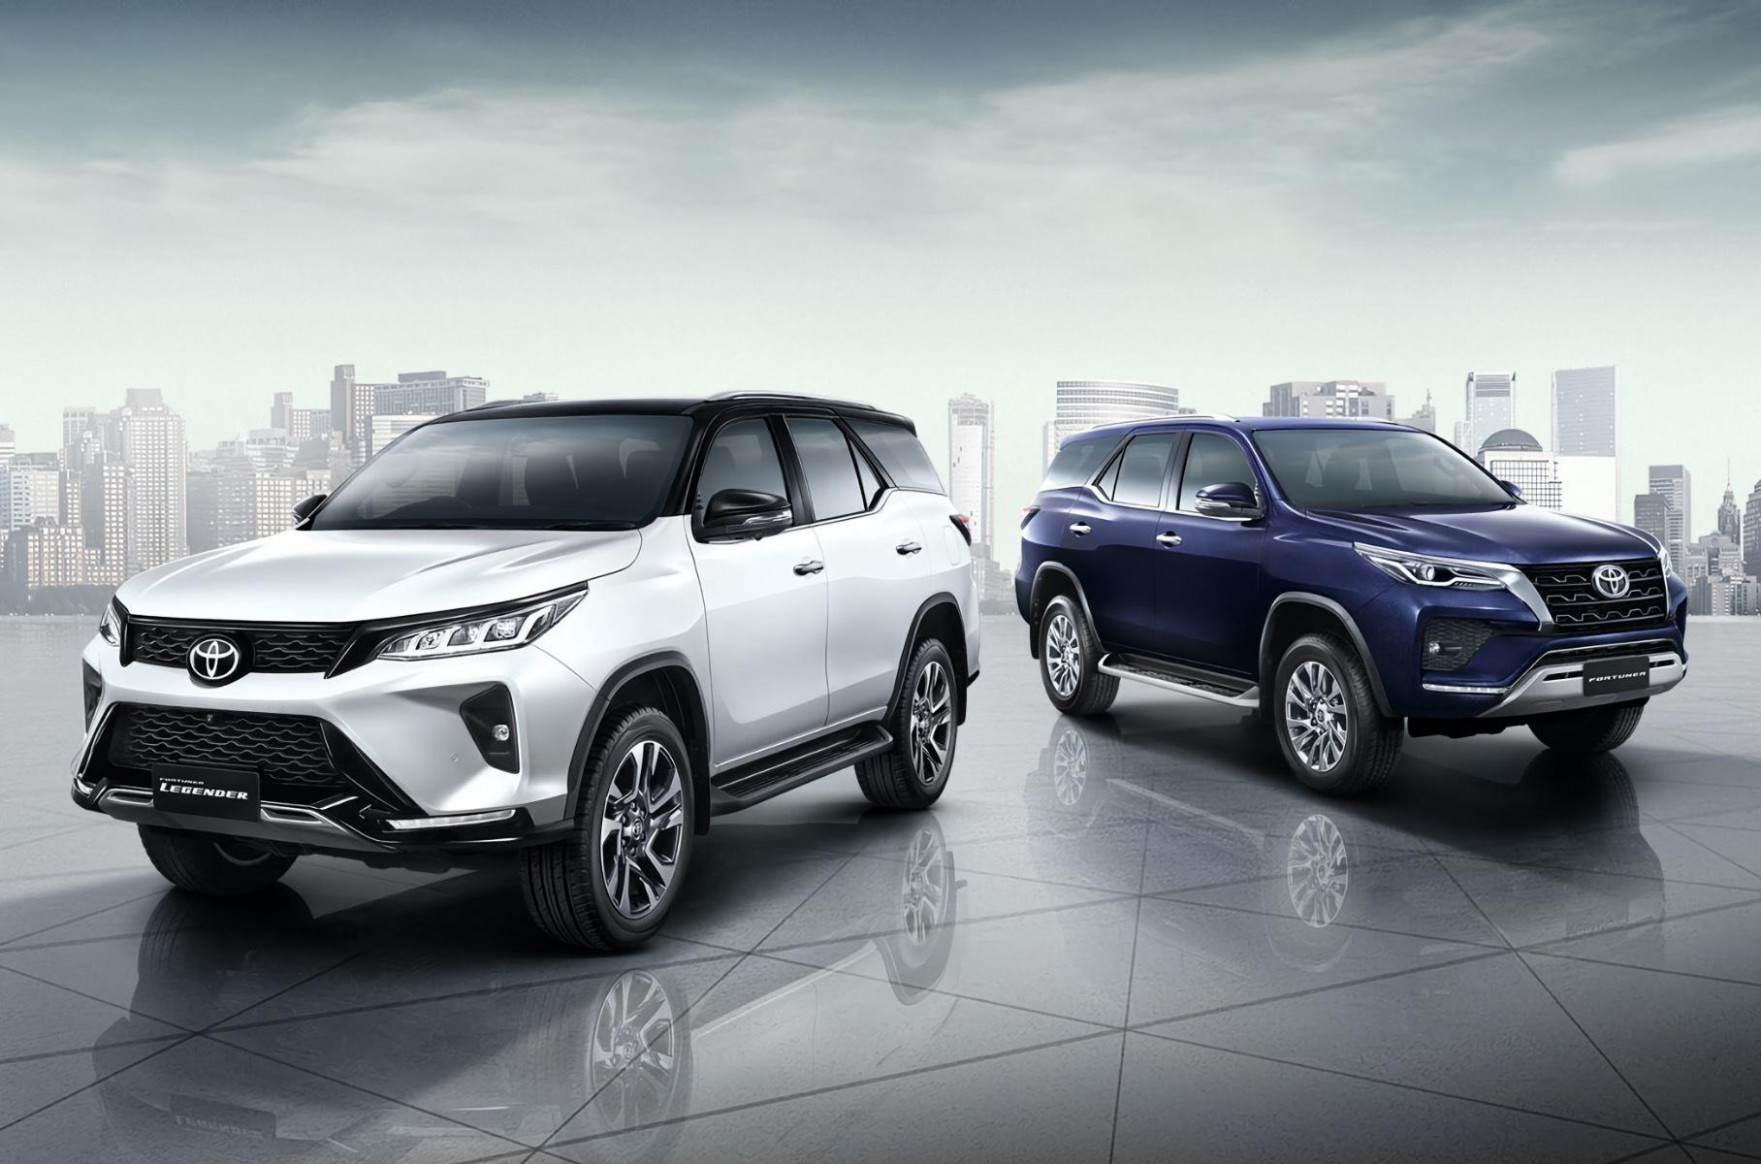 New Concept Toyota Fortuner 2022 Model